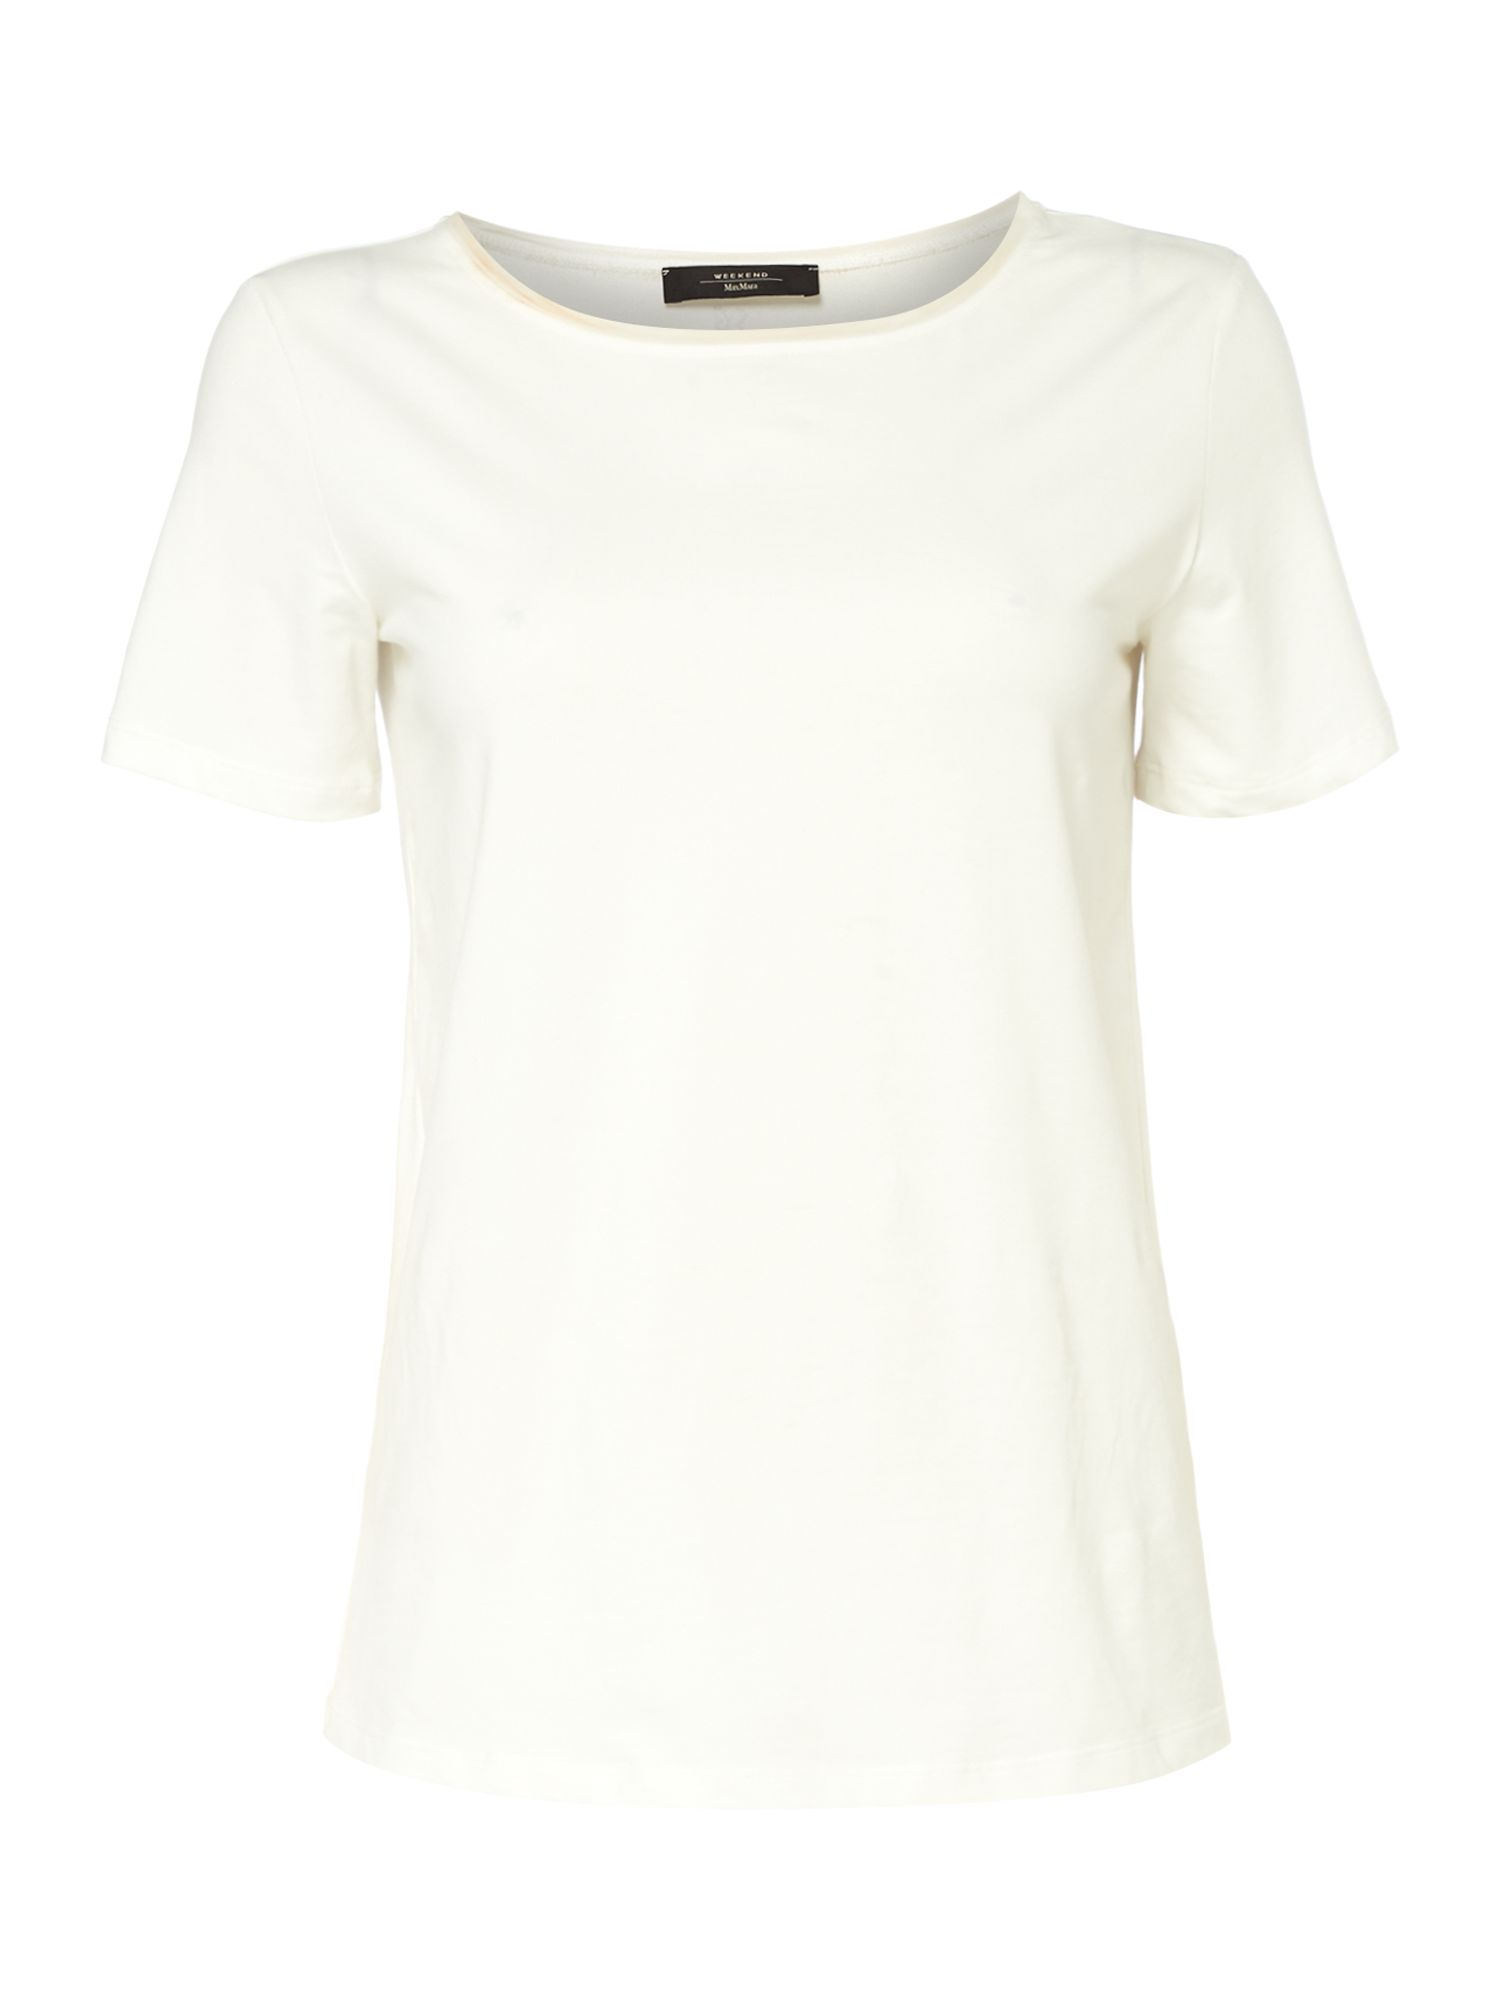 Max Mara Weekend Multid Plain White Jersey Tee, White